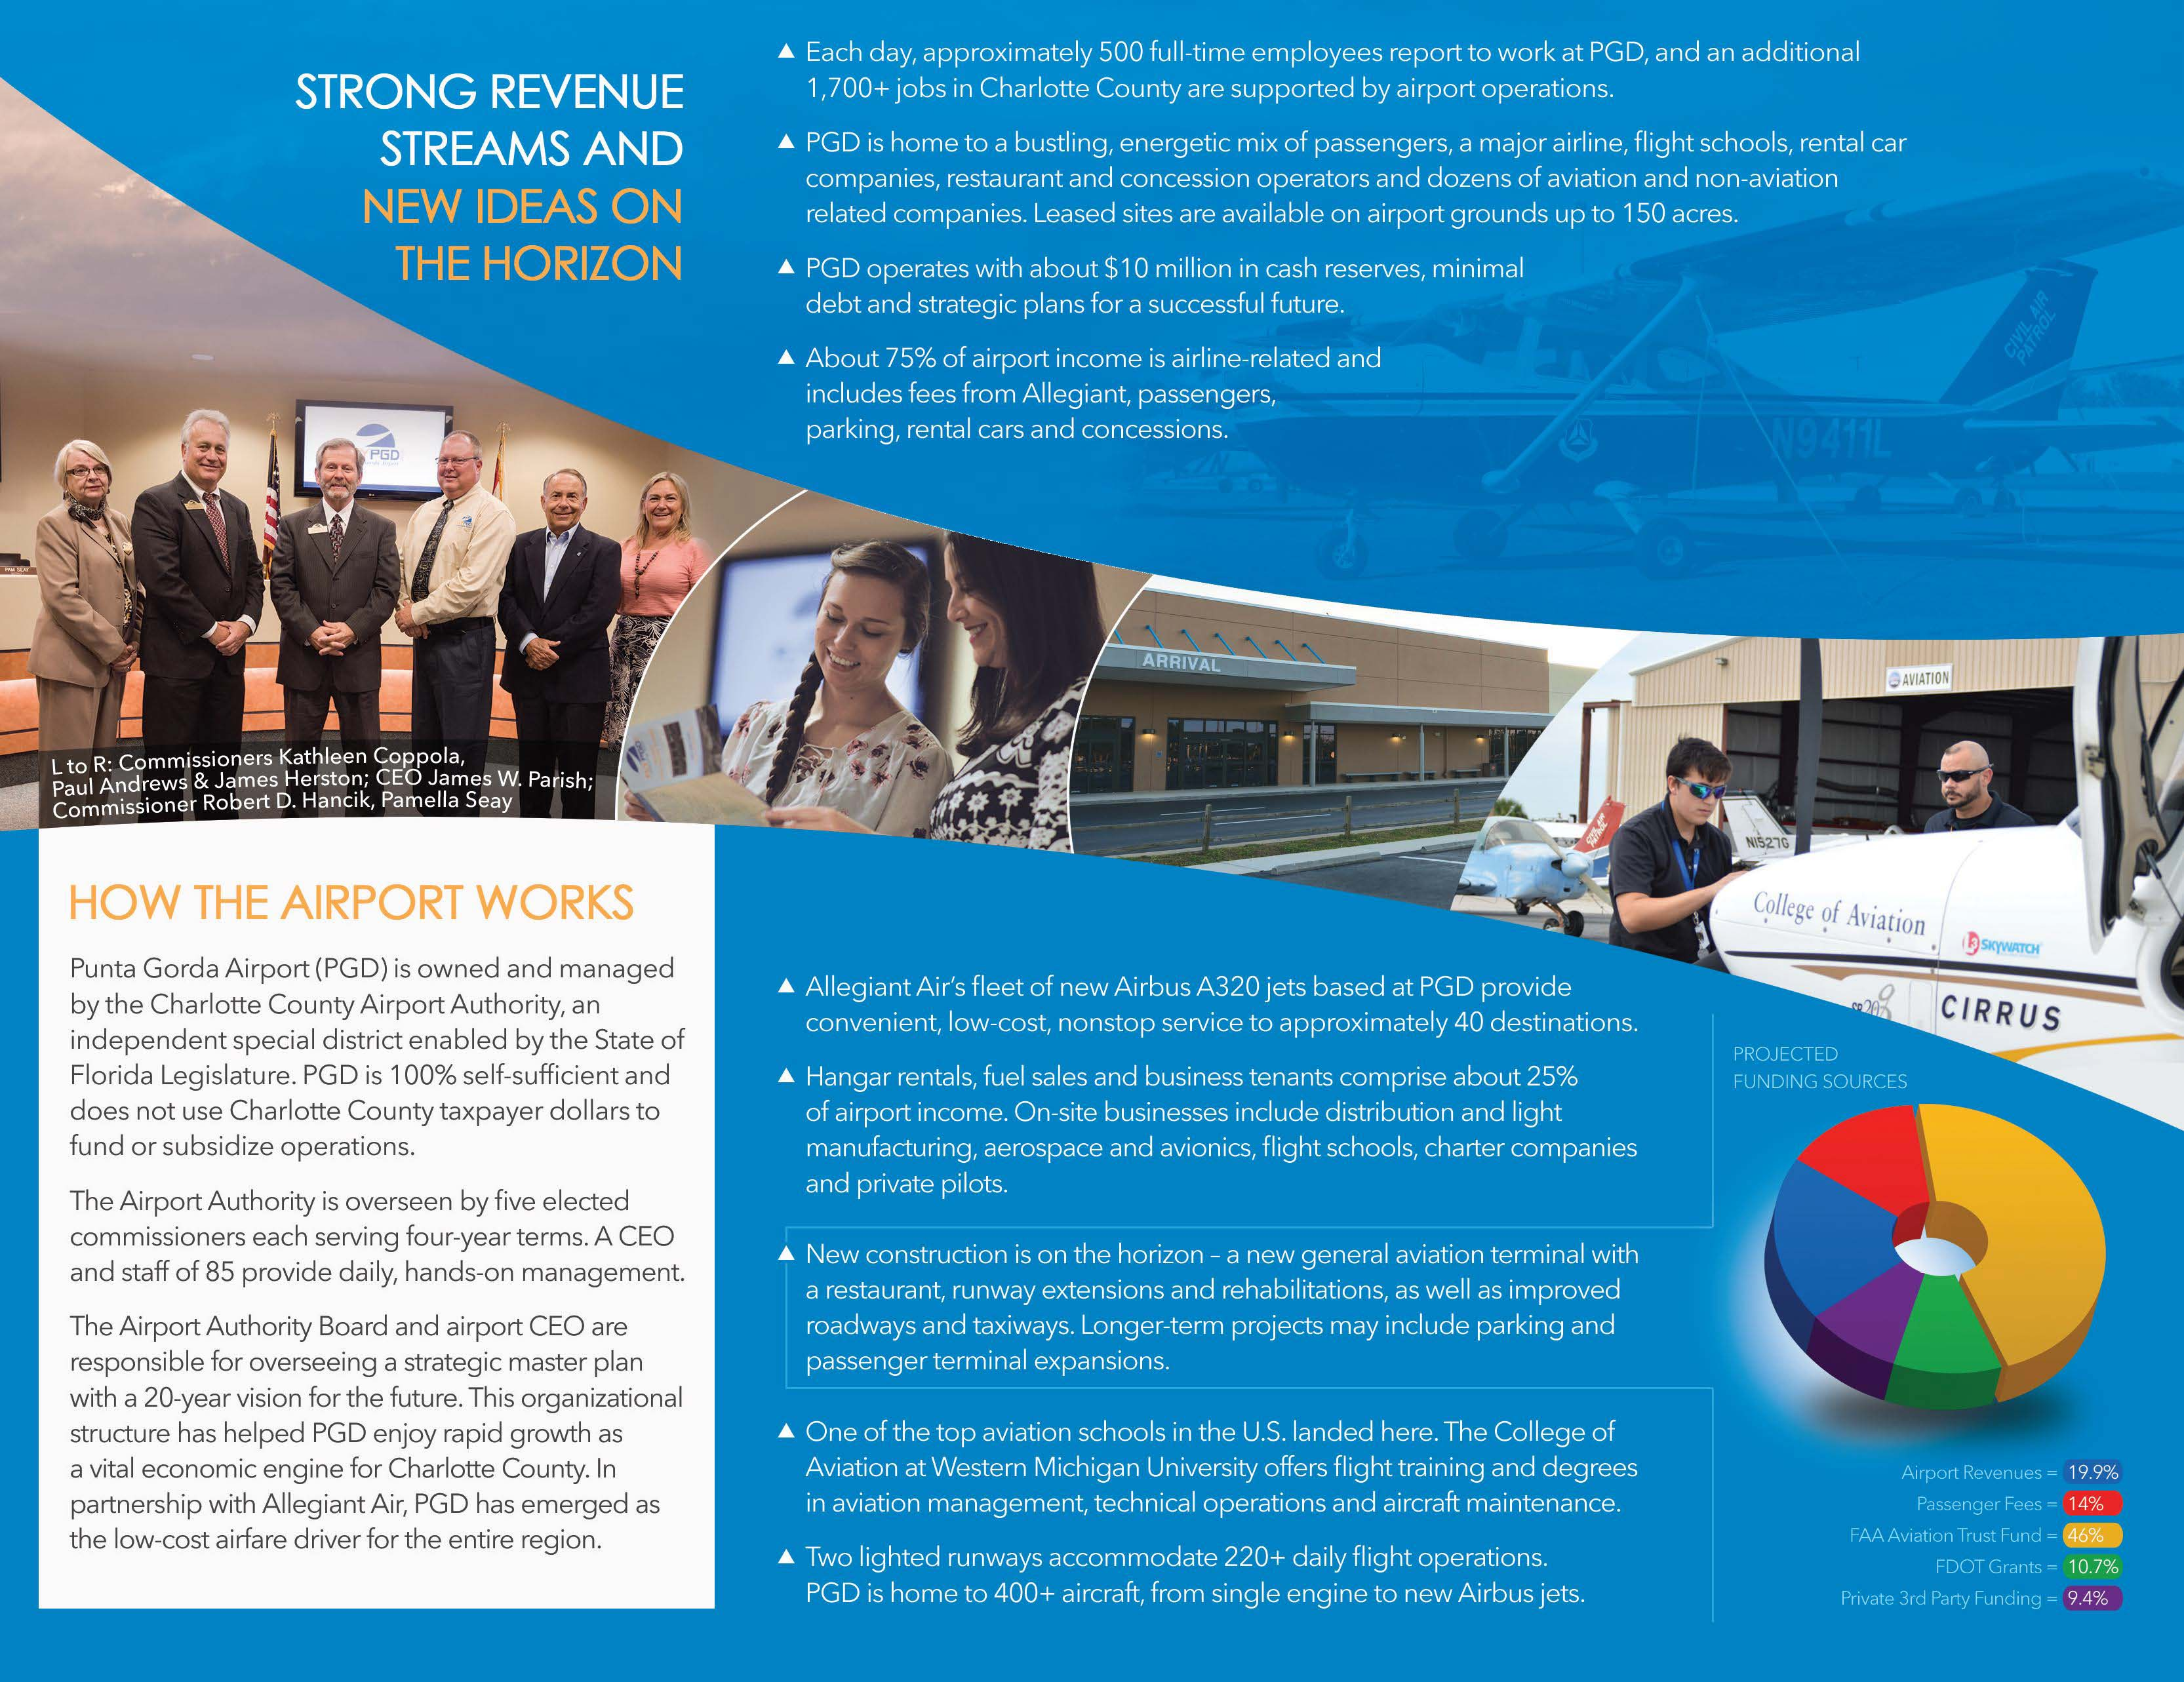 pgd business overview brochure